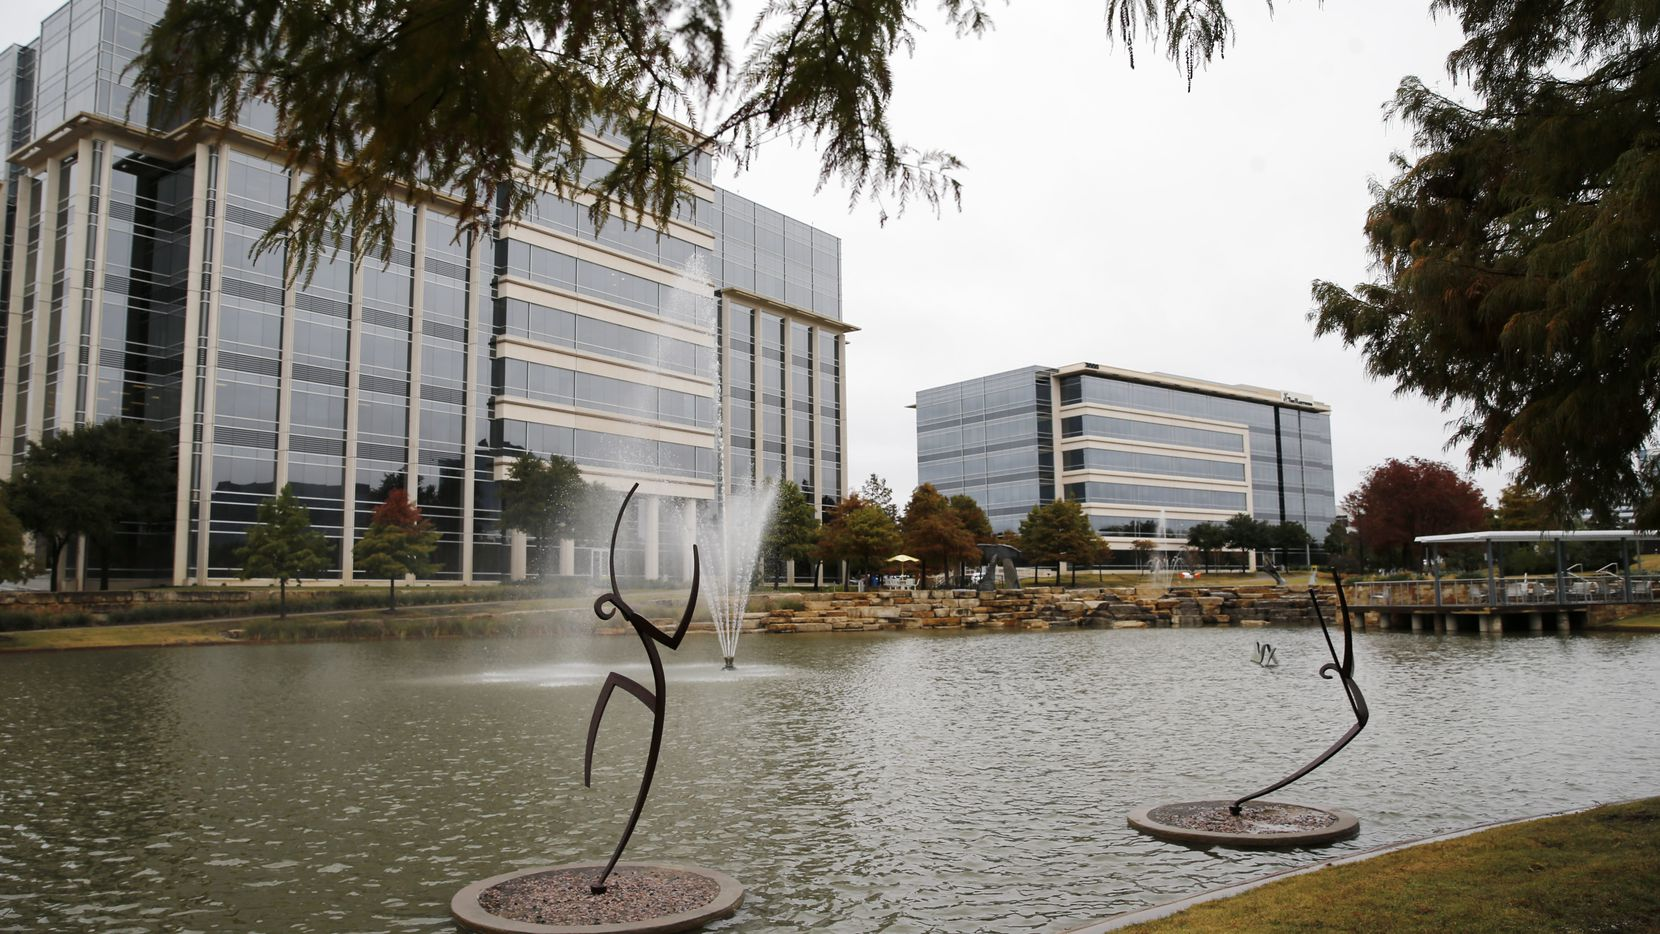 Sculptures off of Network Blvd at Hall Office Park in Frisco, on Thursday, November 7, 2019. (Vernon Bryant/The Dallas Morning News)